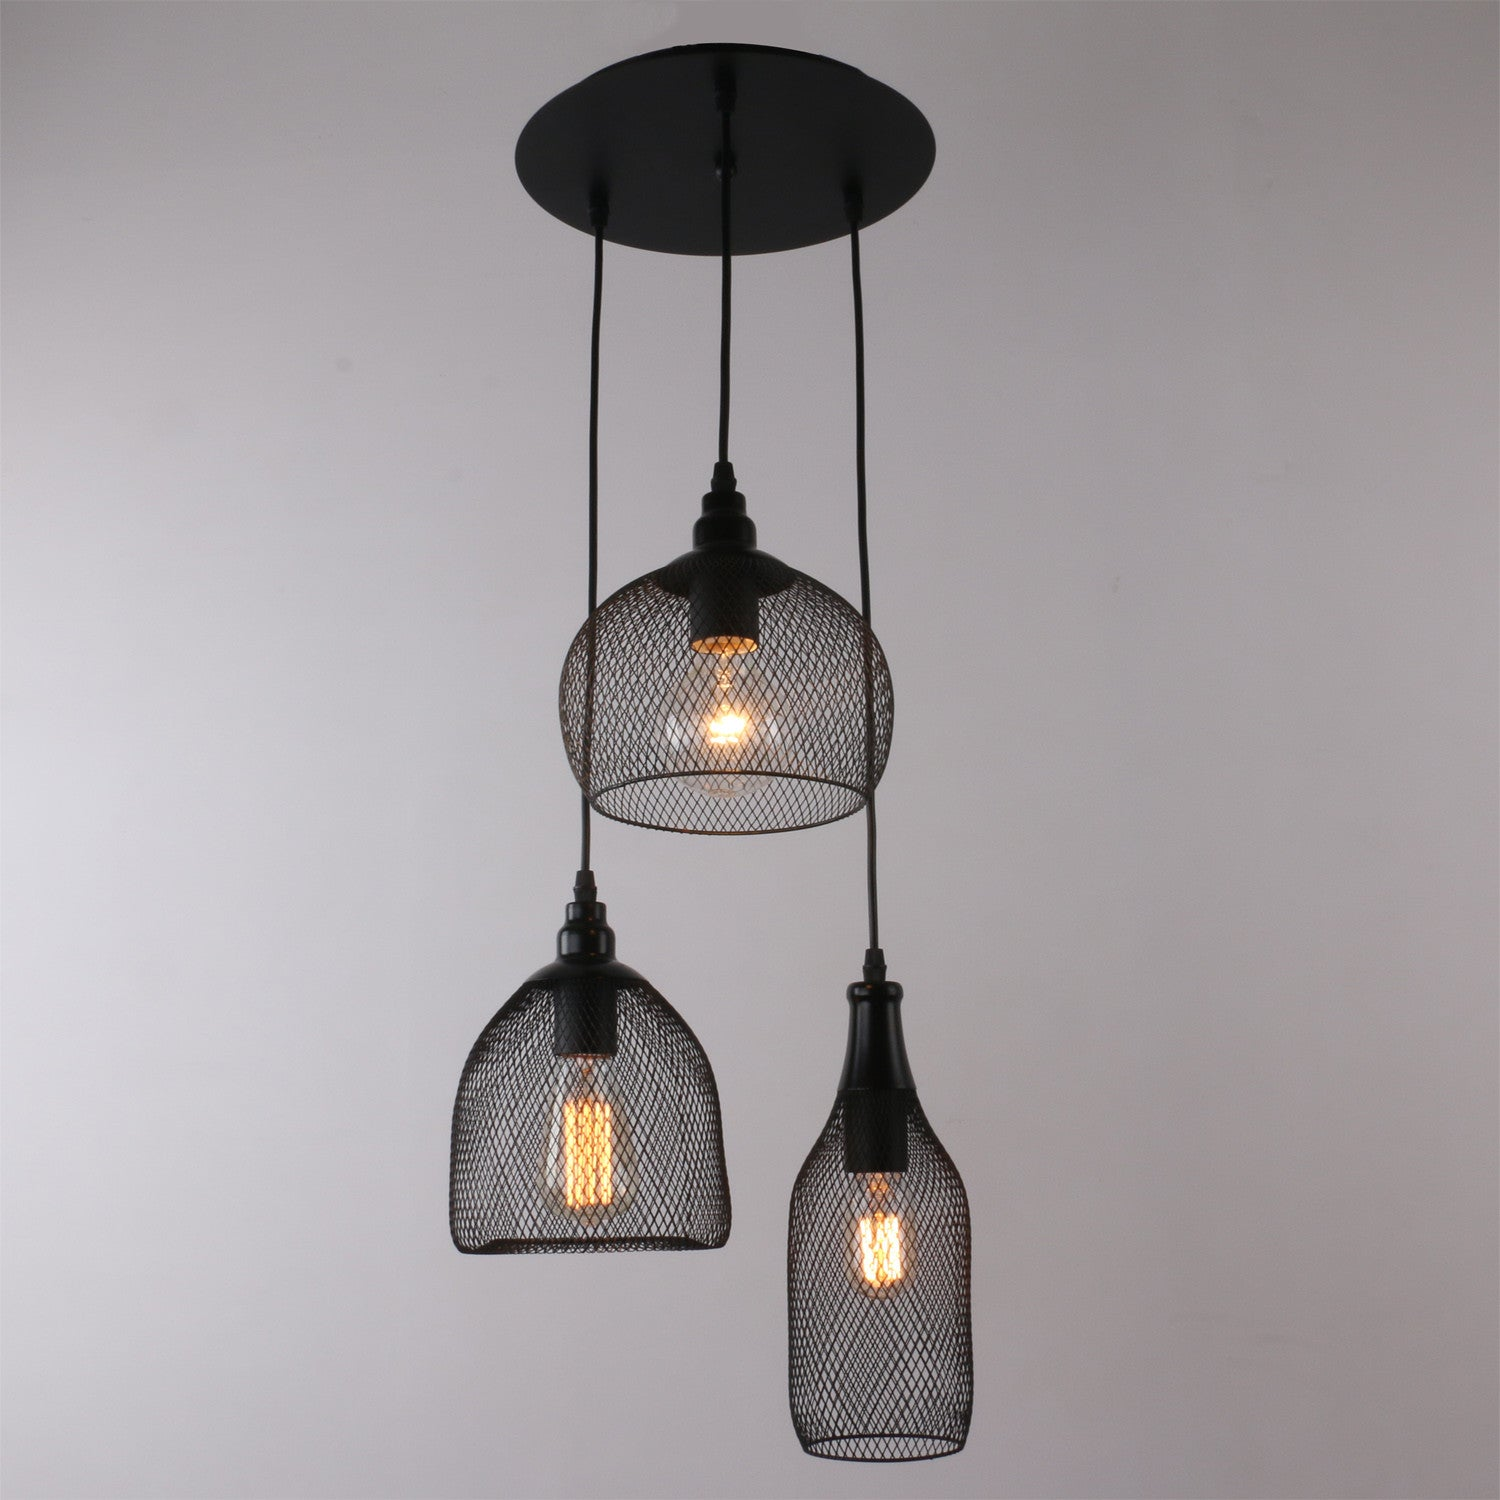 lights pendant amazon shade metal dp hanging finish antique ceiling rustic unitary brand max light com painted with black